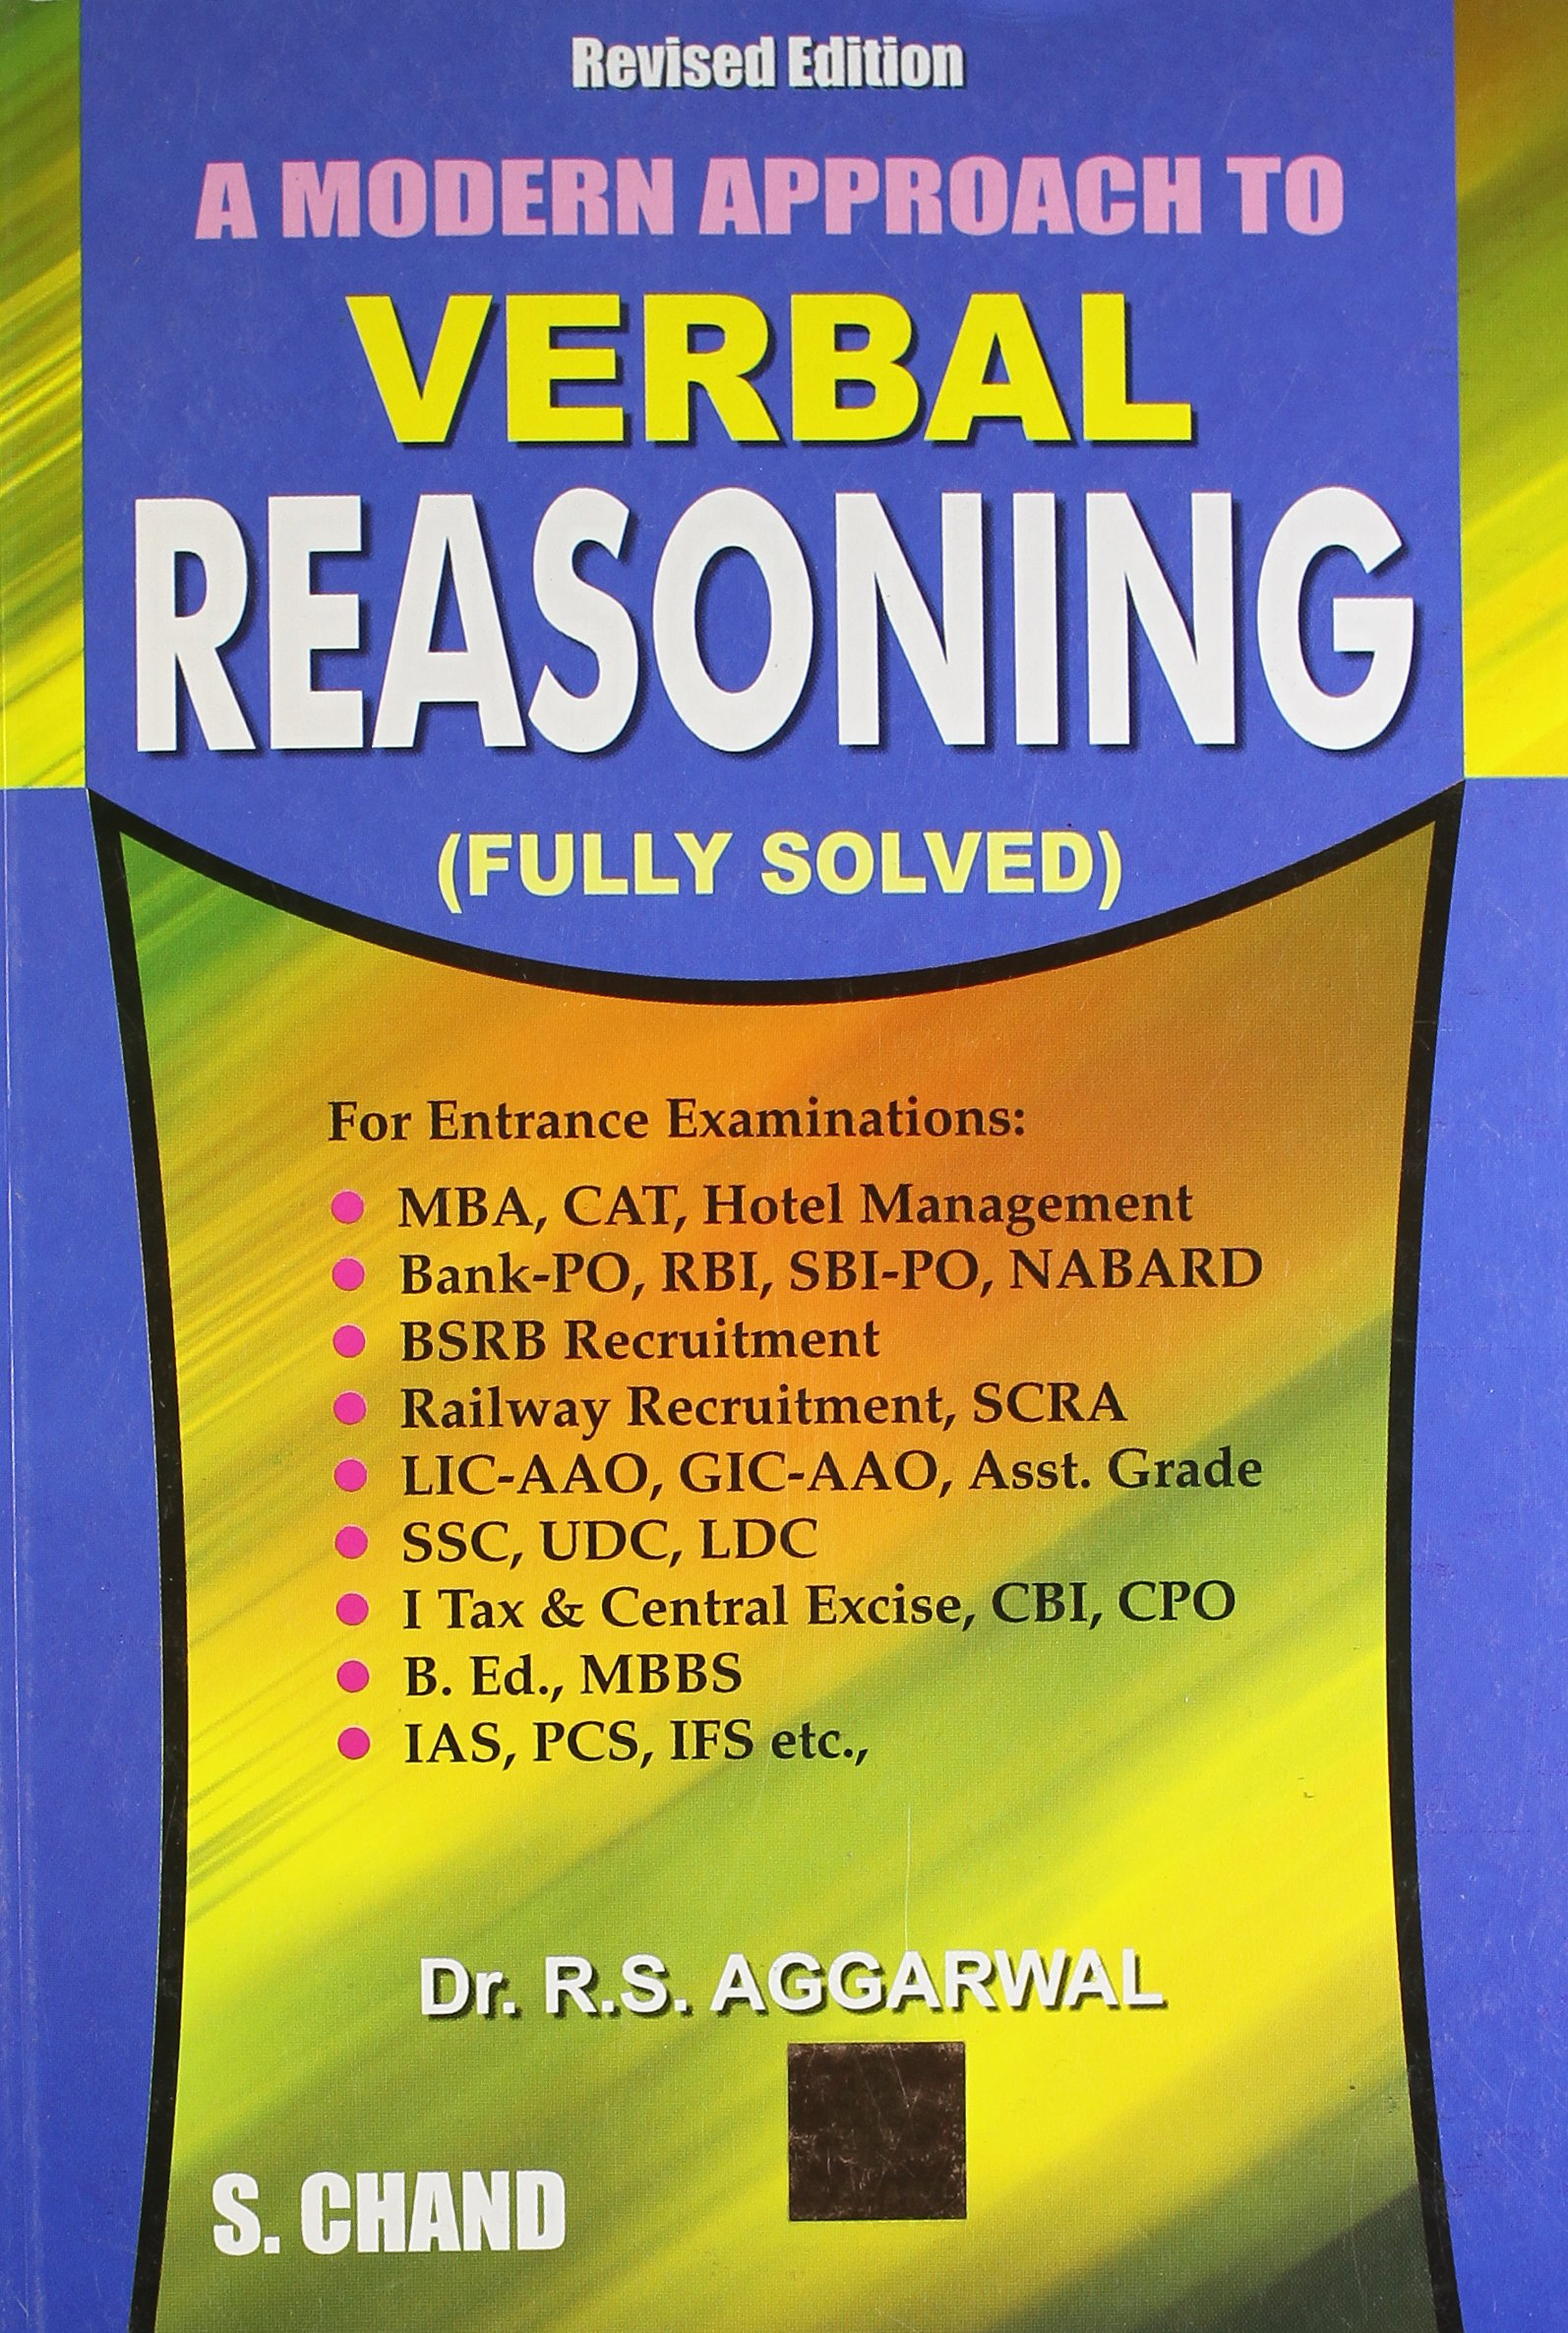 Buy a modern approach to verbal reasoning fully solved old buy a modern approach to verbal reasoning fully solved old edition book online at low prices in india a modern approach to verbal reasoning fully fandeluxe Choice Image